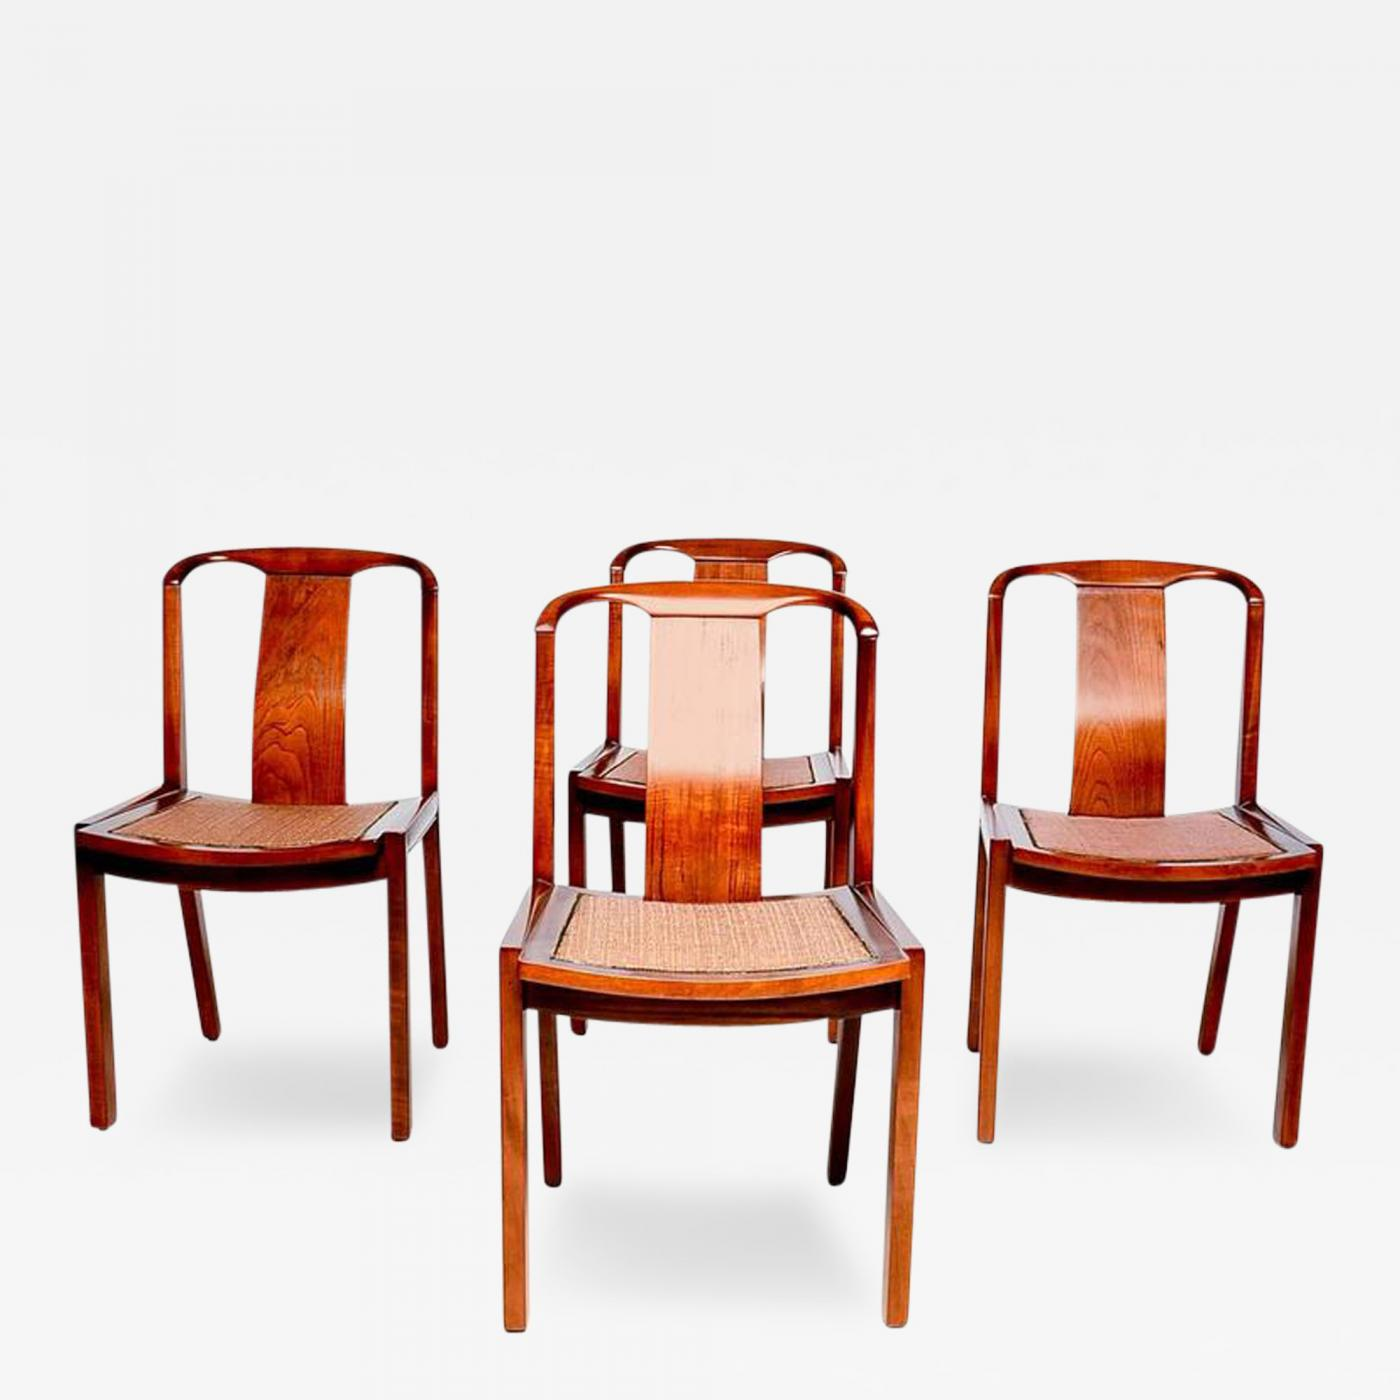 Swell Set Of Four Dining Chairs After Baker Evergreenethics Interior Chair Design Evergreenethicsorg